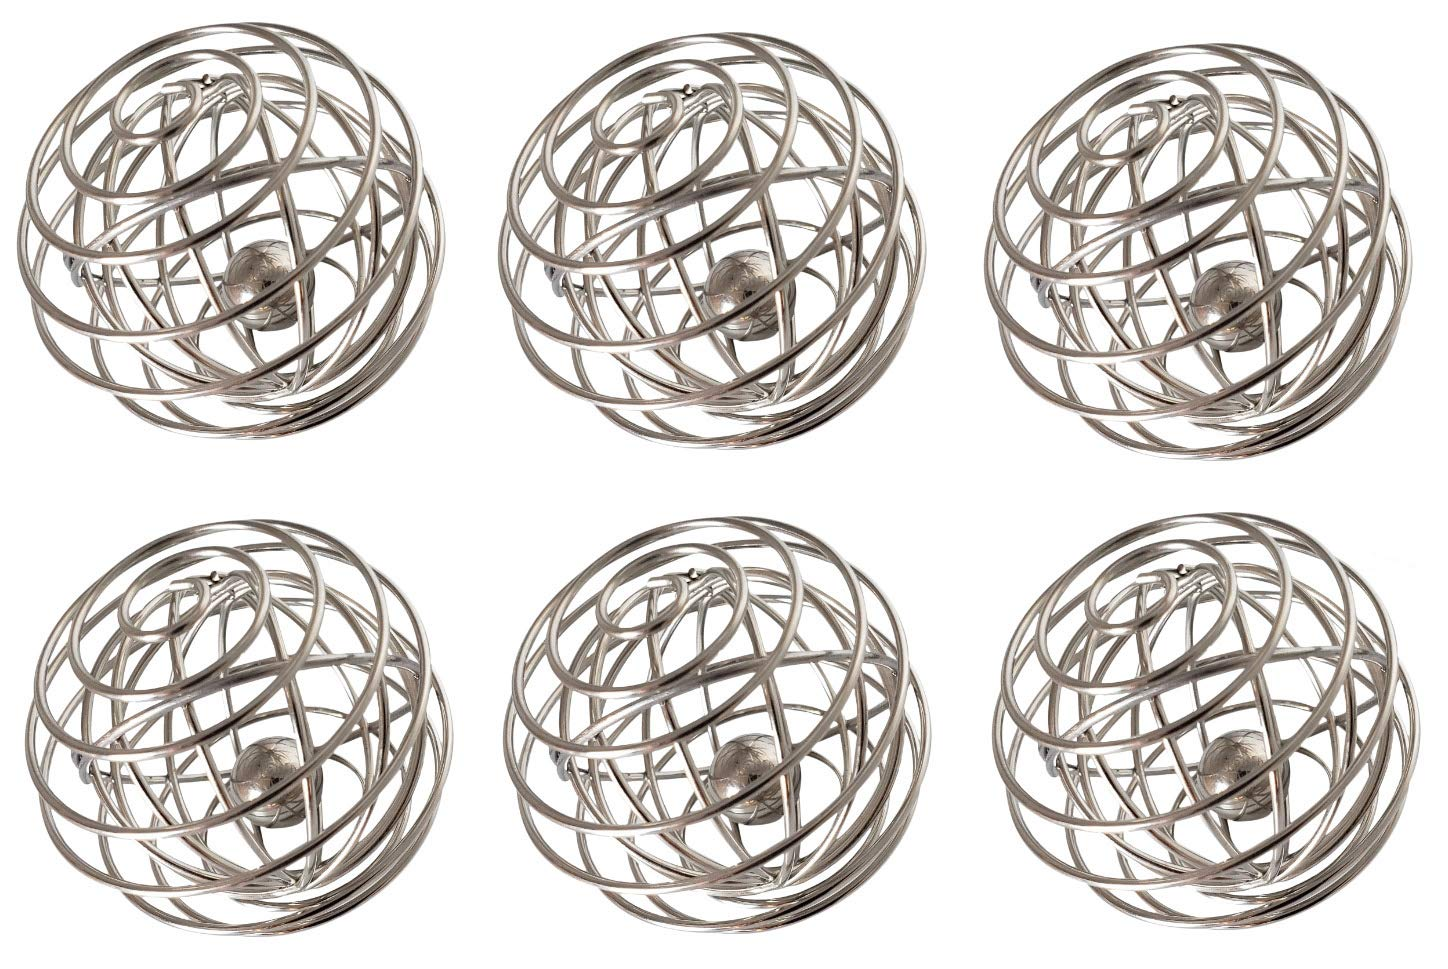 (6) Amazing Shaker Balls | Mason Jar Whisk Balls | Cocktail Mixer Ball for Decadent Foams | Ball Whisk for Shaker Bottle Ball | Protein Mix Ball | Mix Matcha Better w/these Ball Shakers (6 whiskballs) by VansieHome